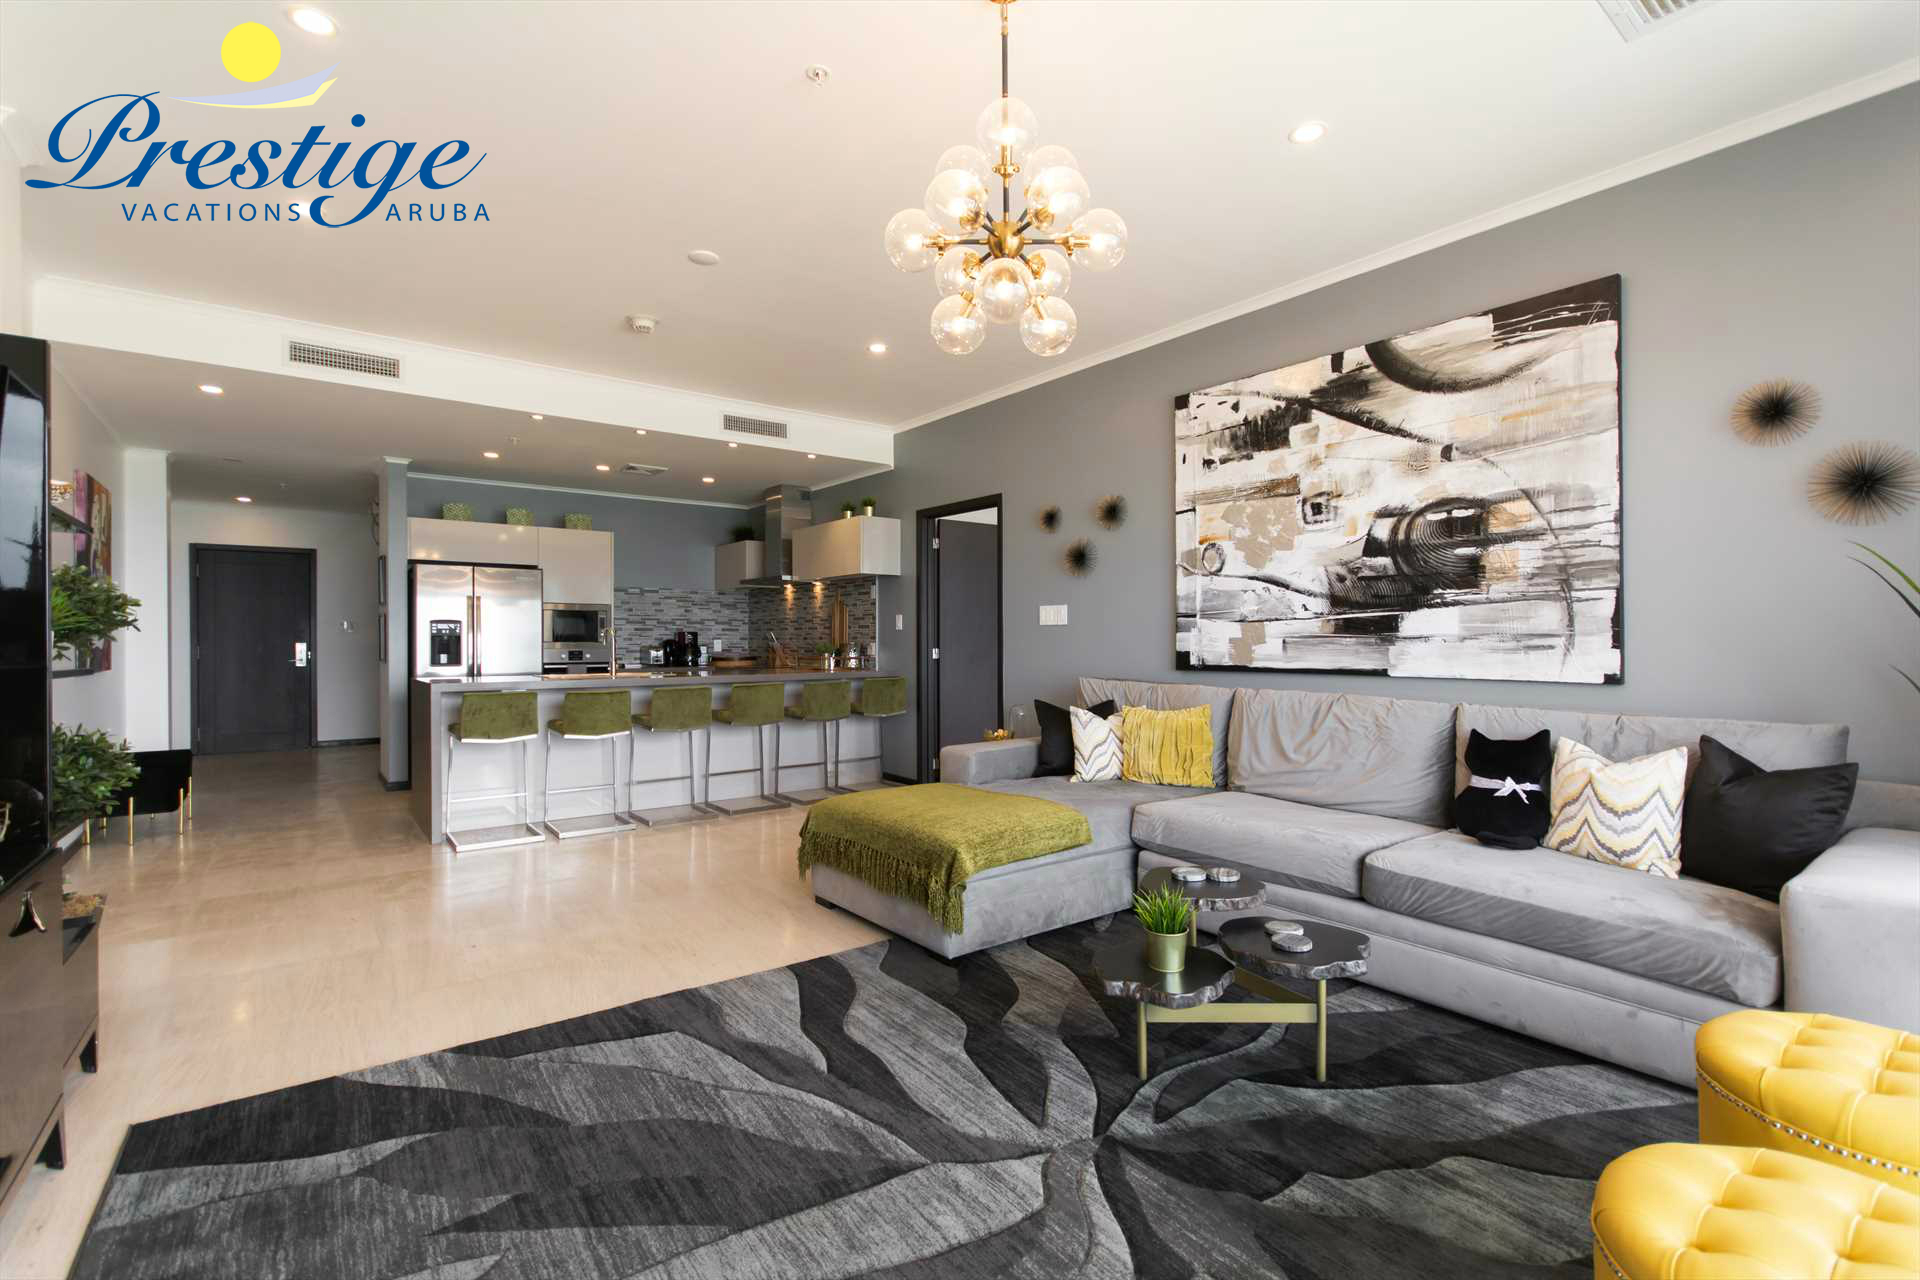 Another view of your spacious and chic living area